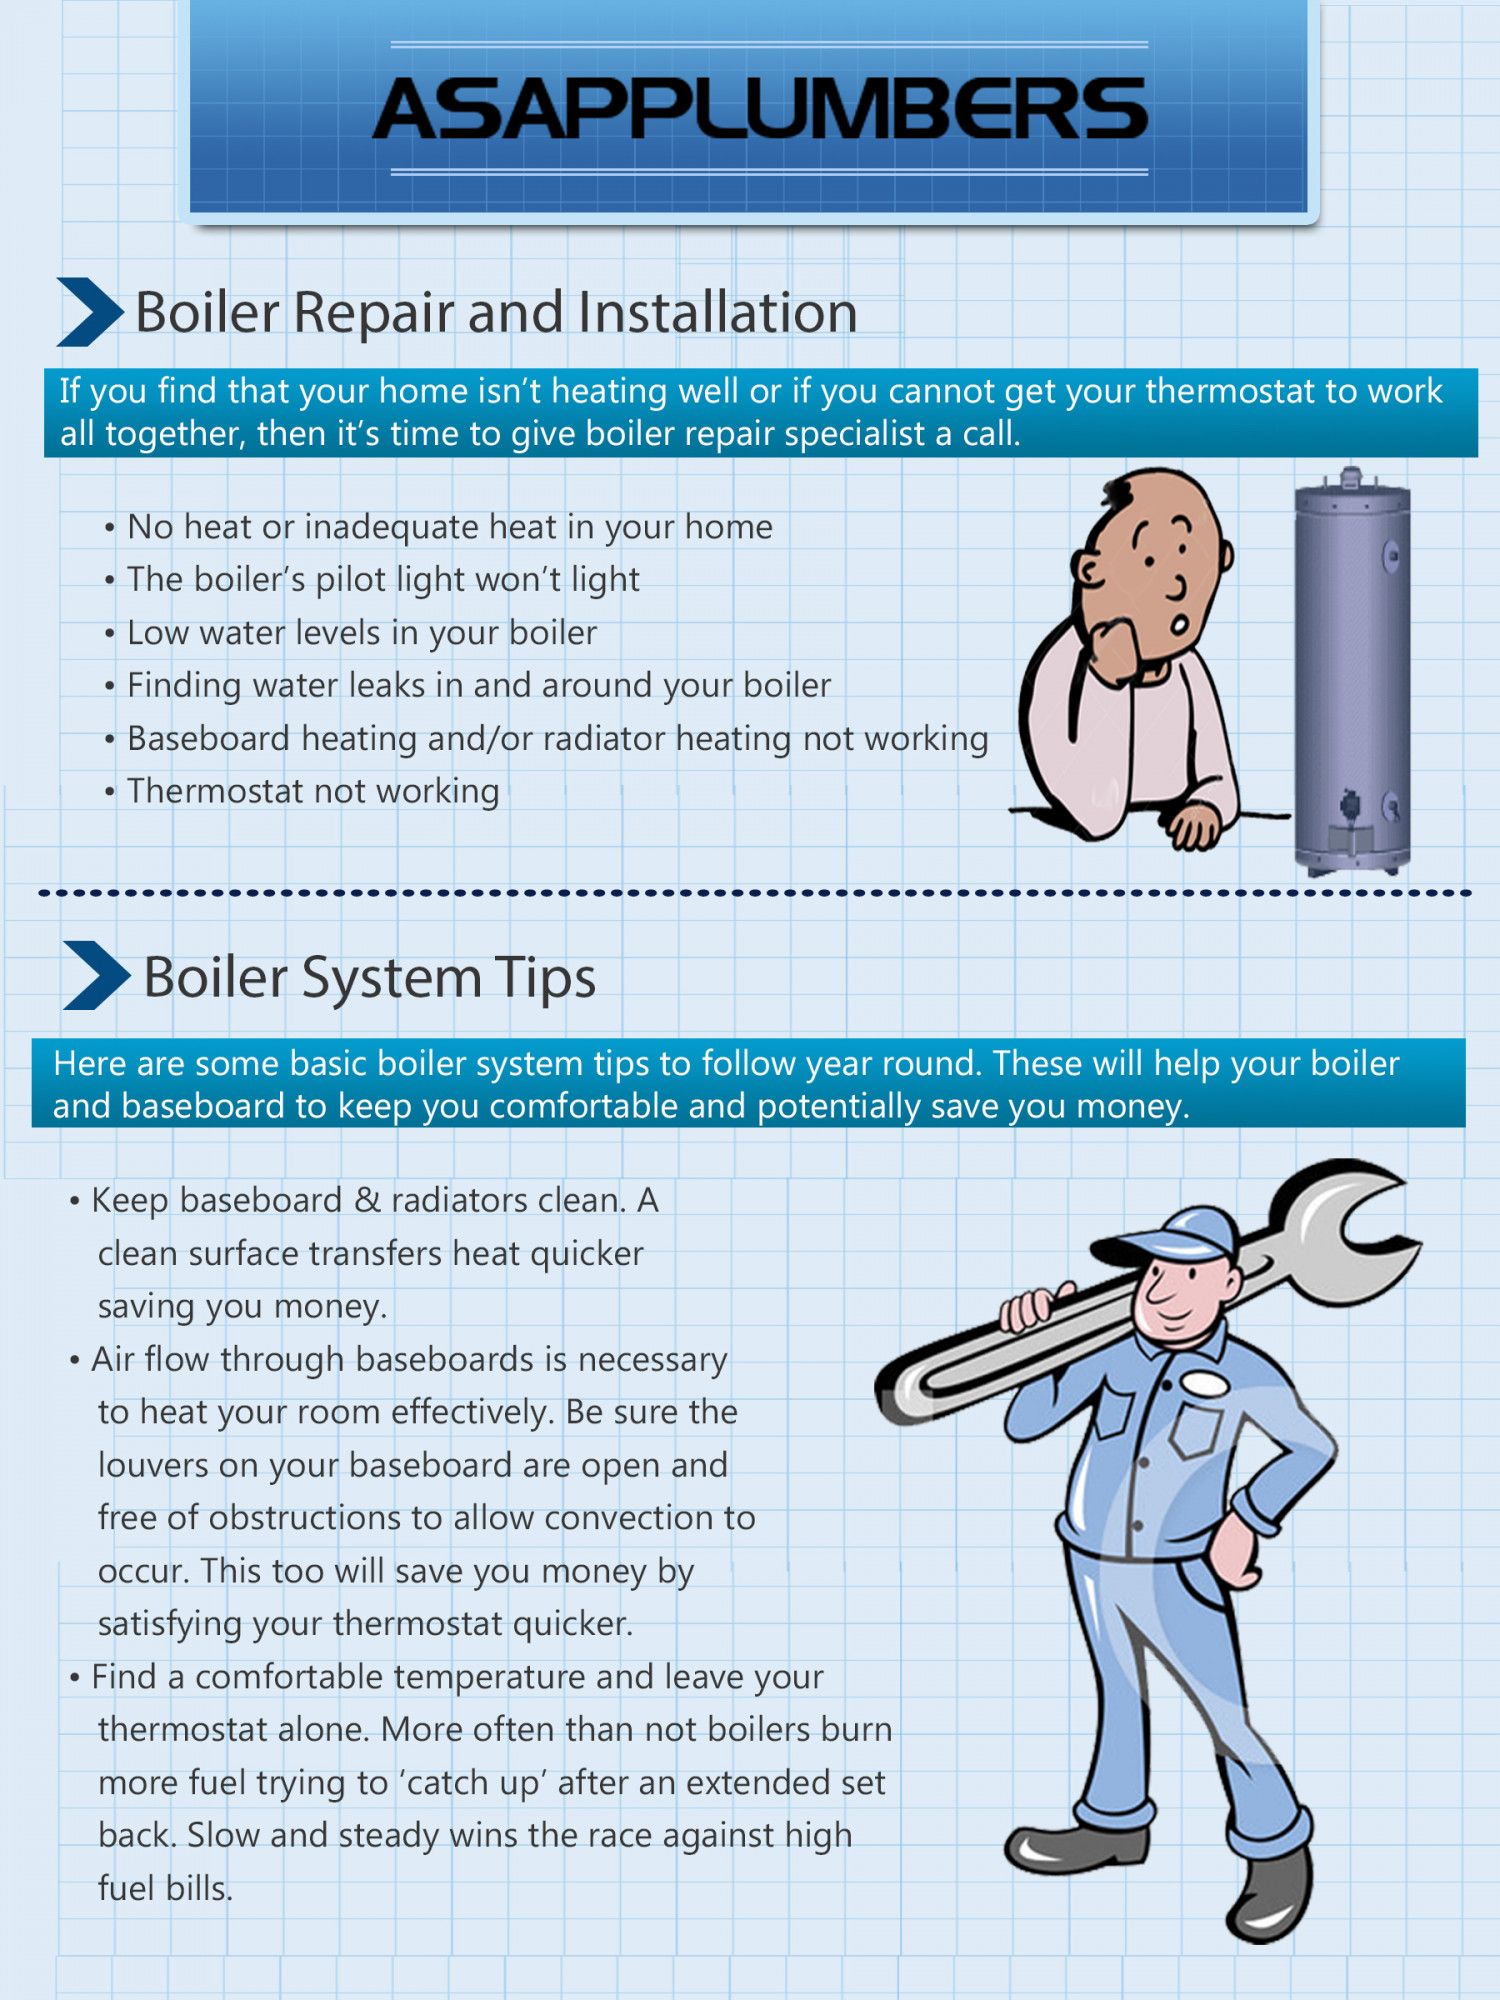 ASAP Plumbers Infographic